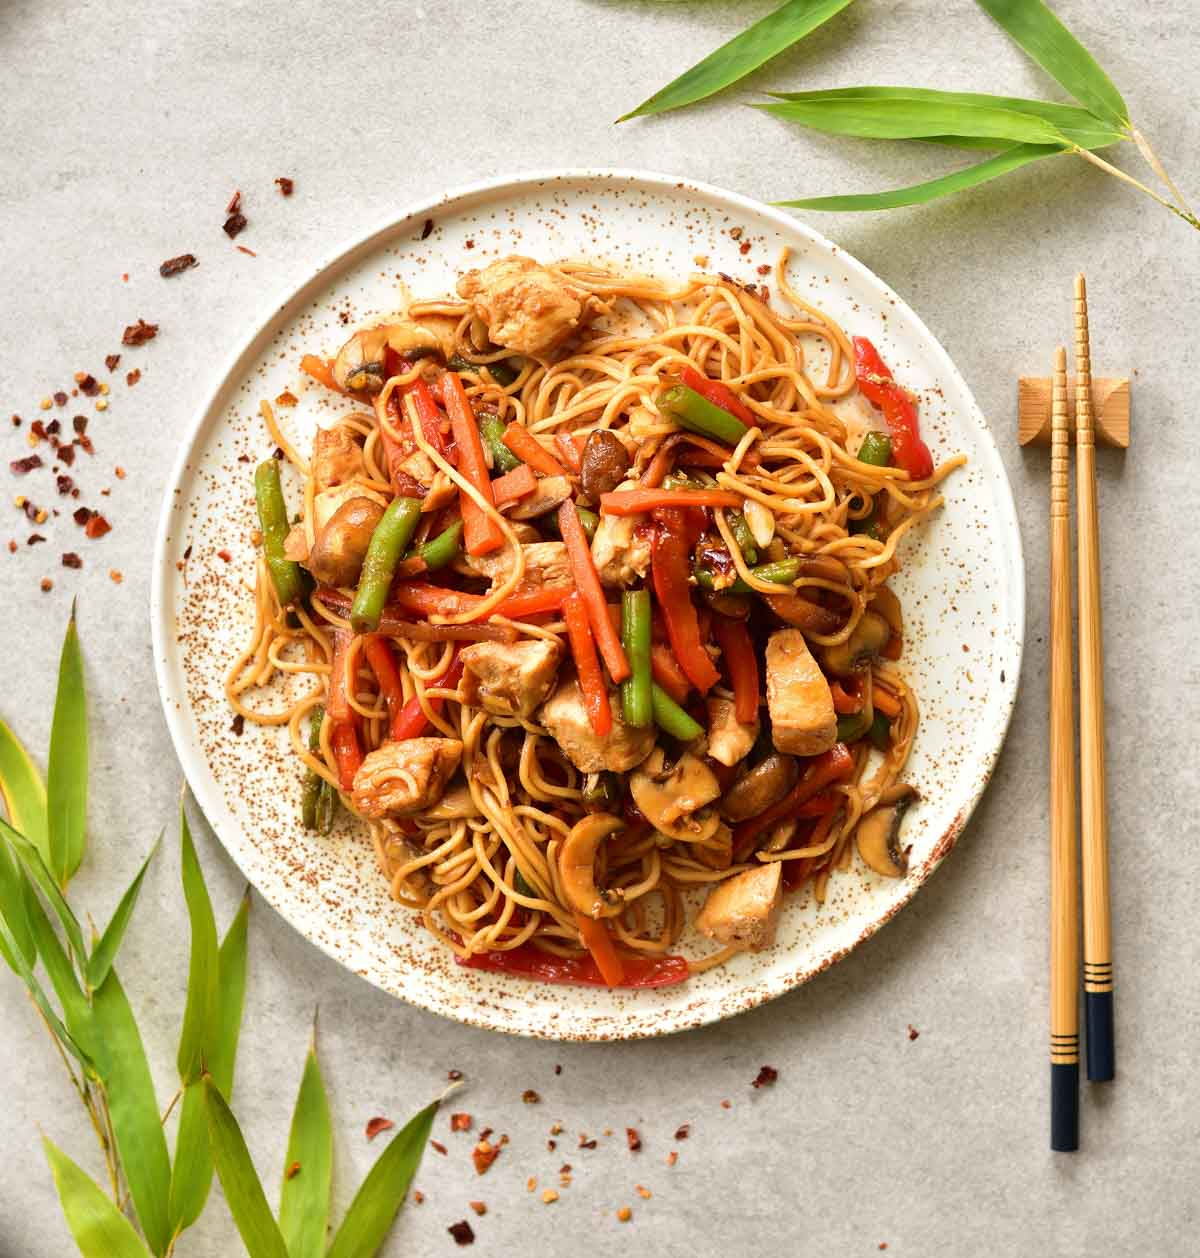 Sweet and sour chicken with noodles and vegetables on a white plate